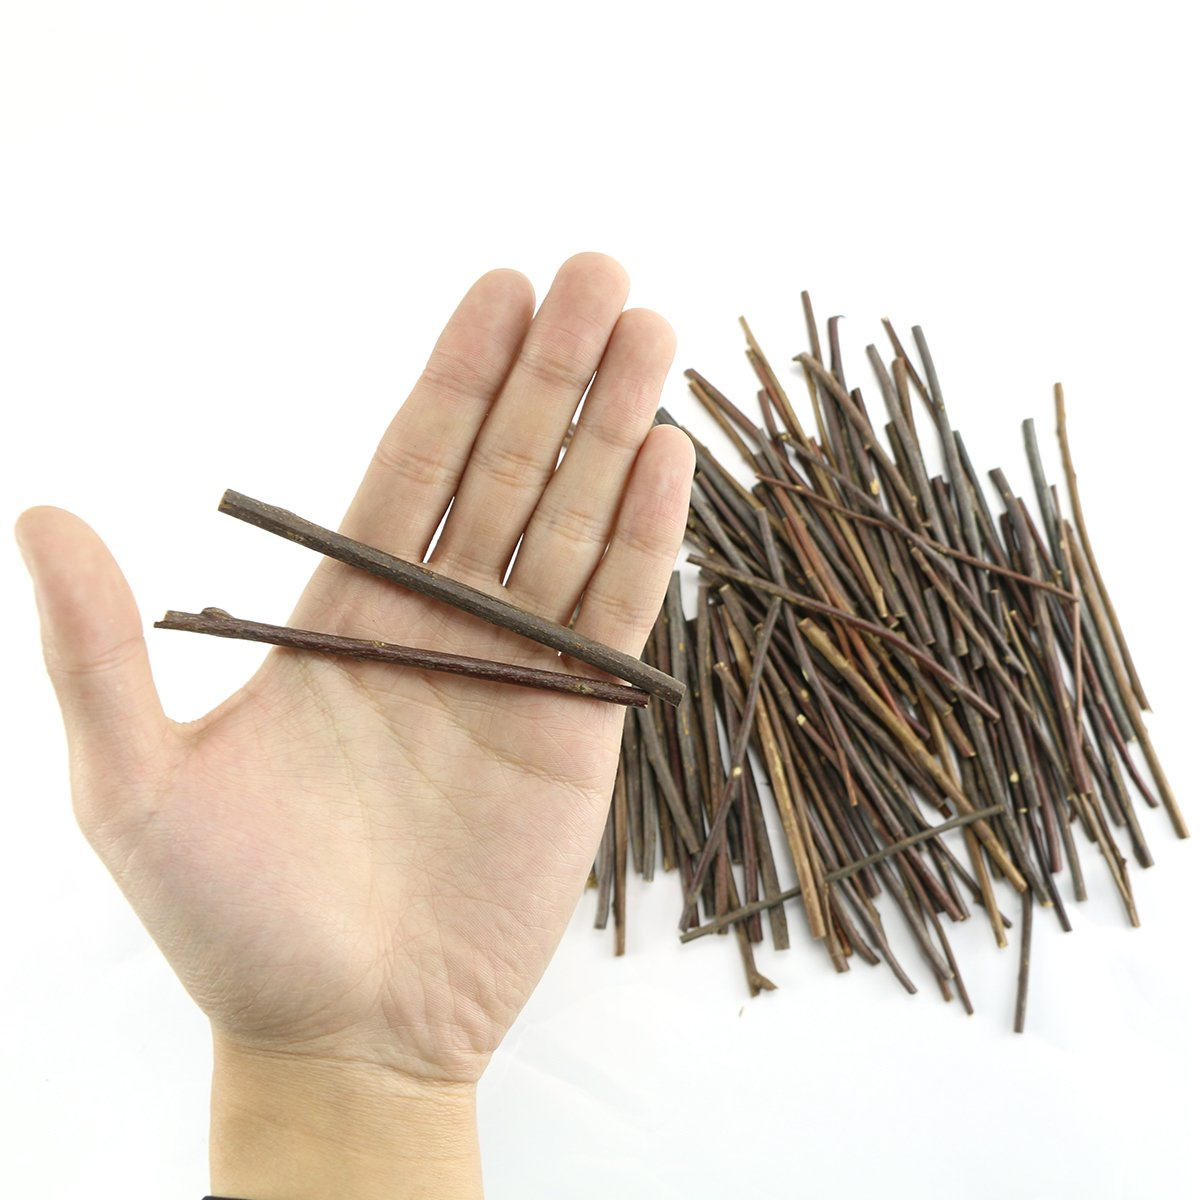 TKOnline 100Pcs 10cm 0.1 0.2 Inch in Diameter Wood Log Sticks for DIY Crafts Photo Props